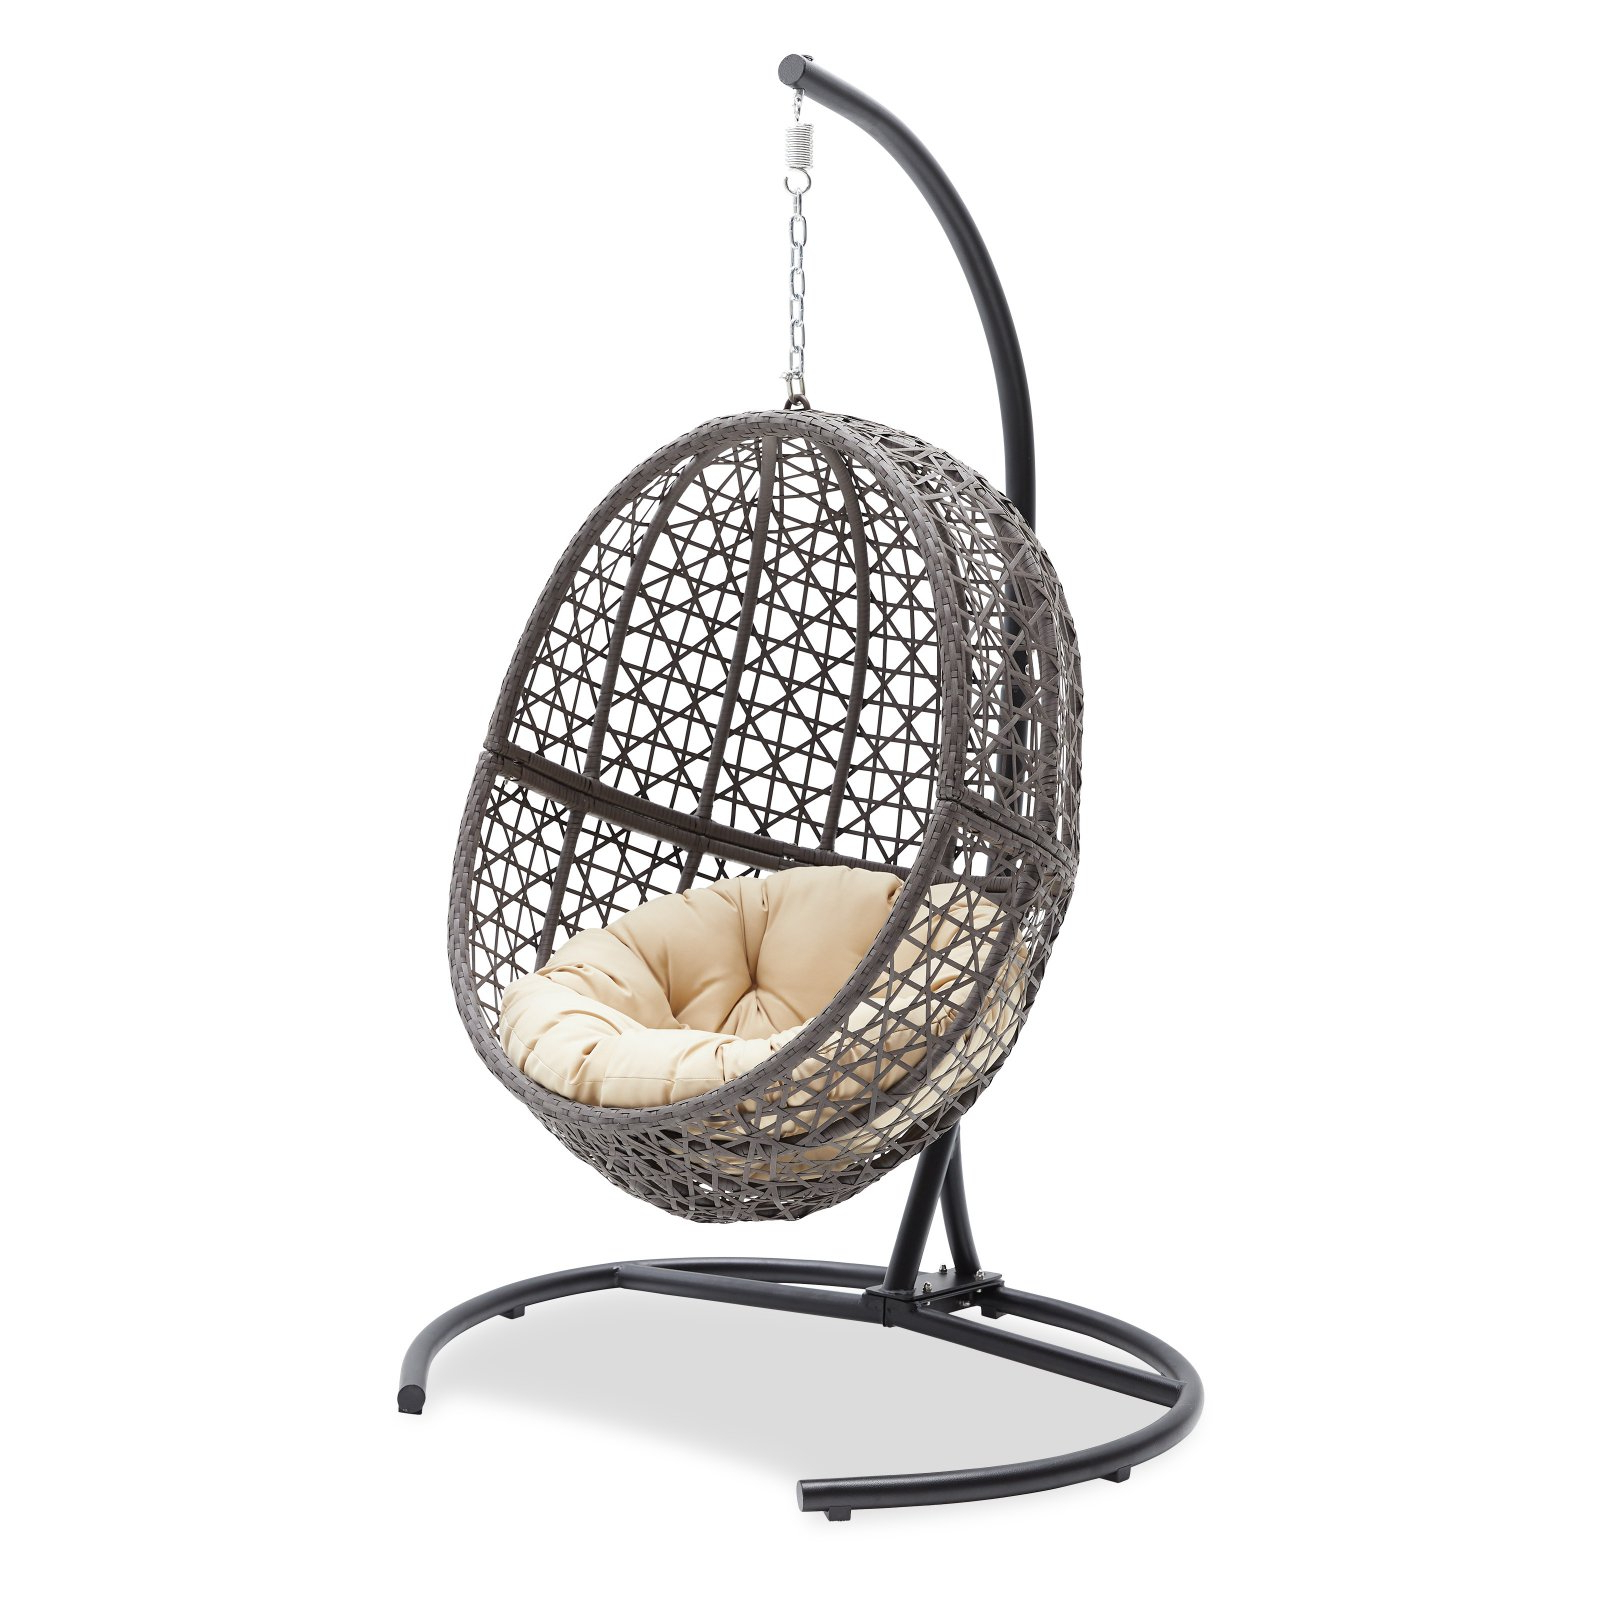 Outdoor Wicker Plastic Tear Porch Swings With Stand Within Famous Belham Living Resin Wicker Hanging Egg Chair With Cushion (Gallery 22 of 30)